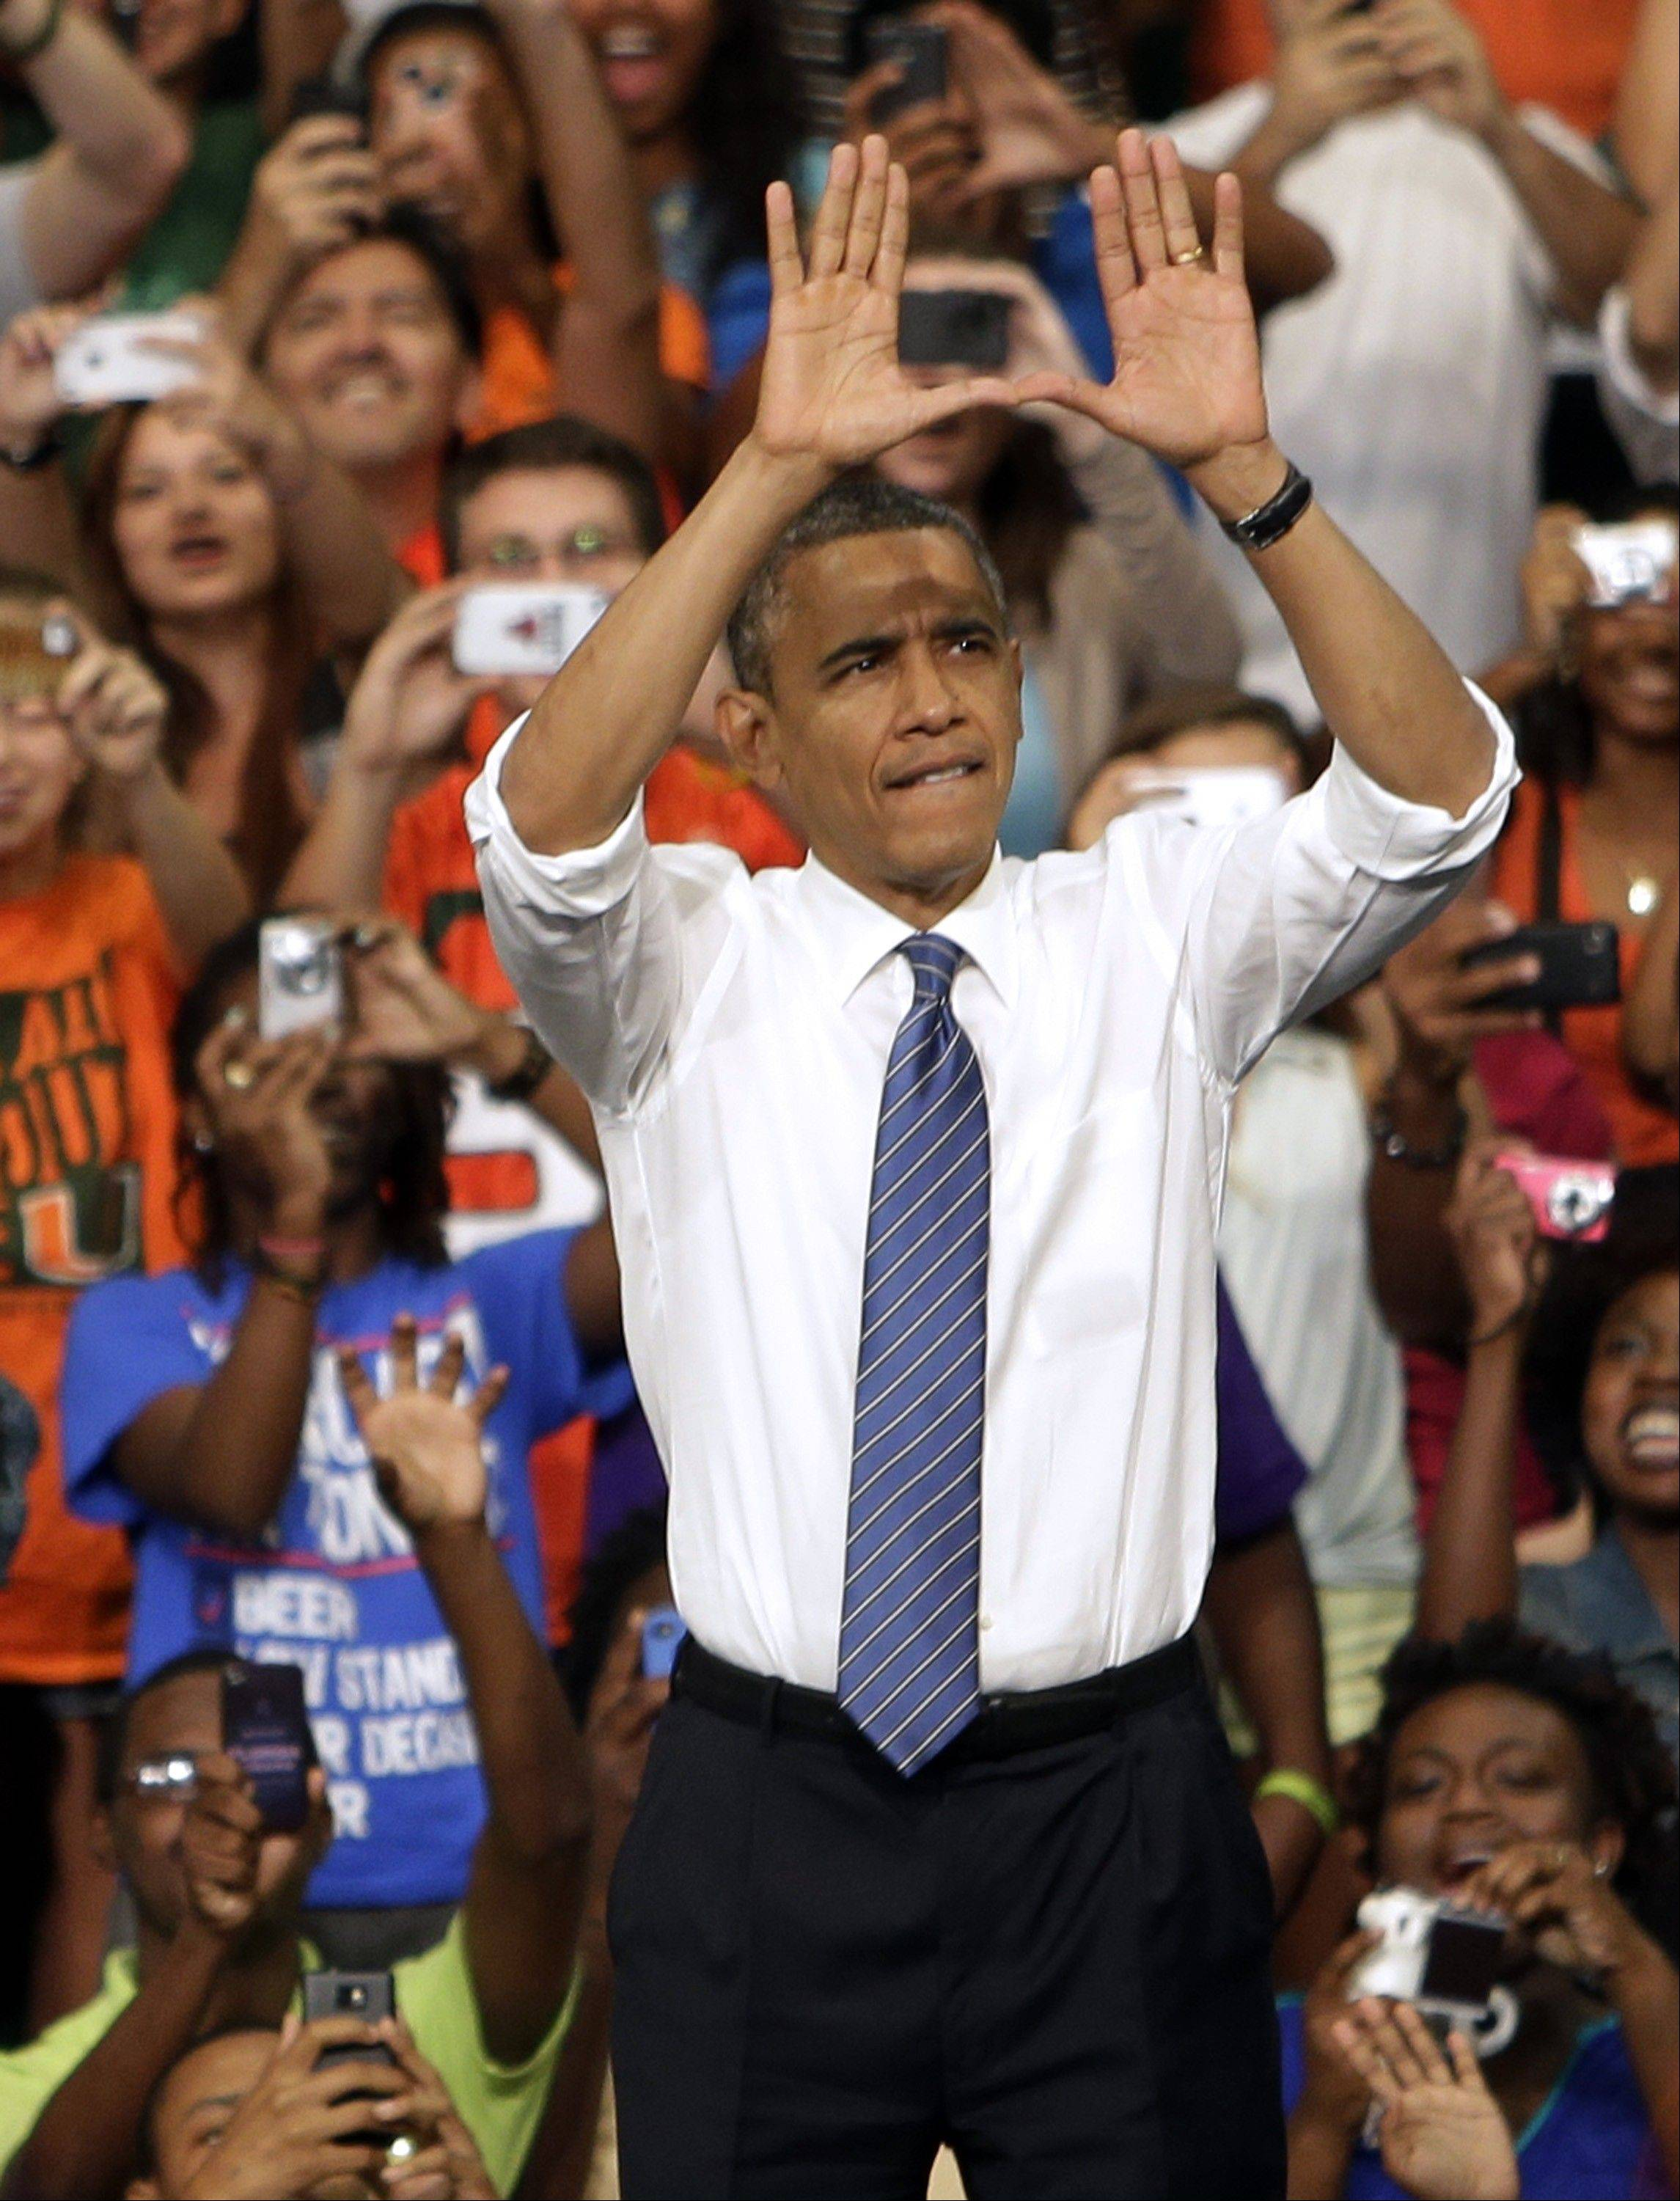 In Miami, Obama plays odd role: Warm-up act